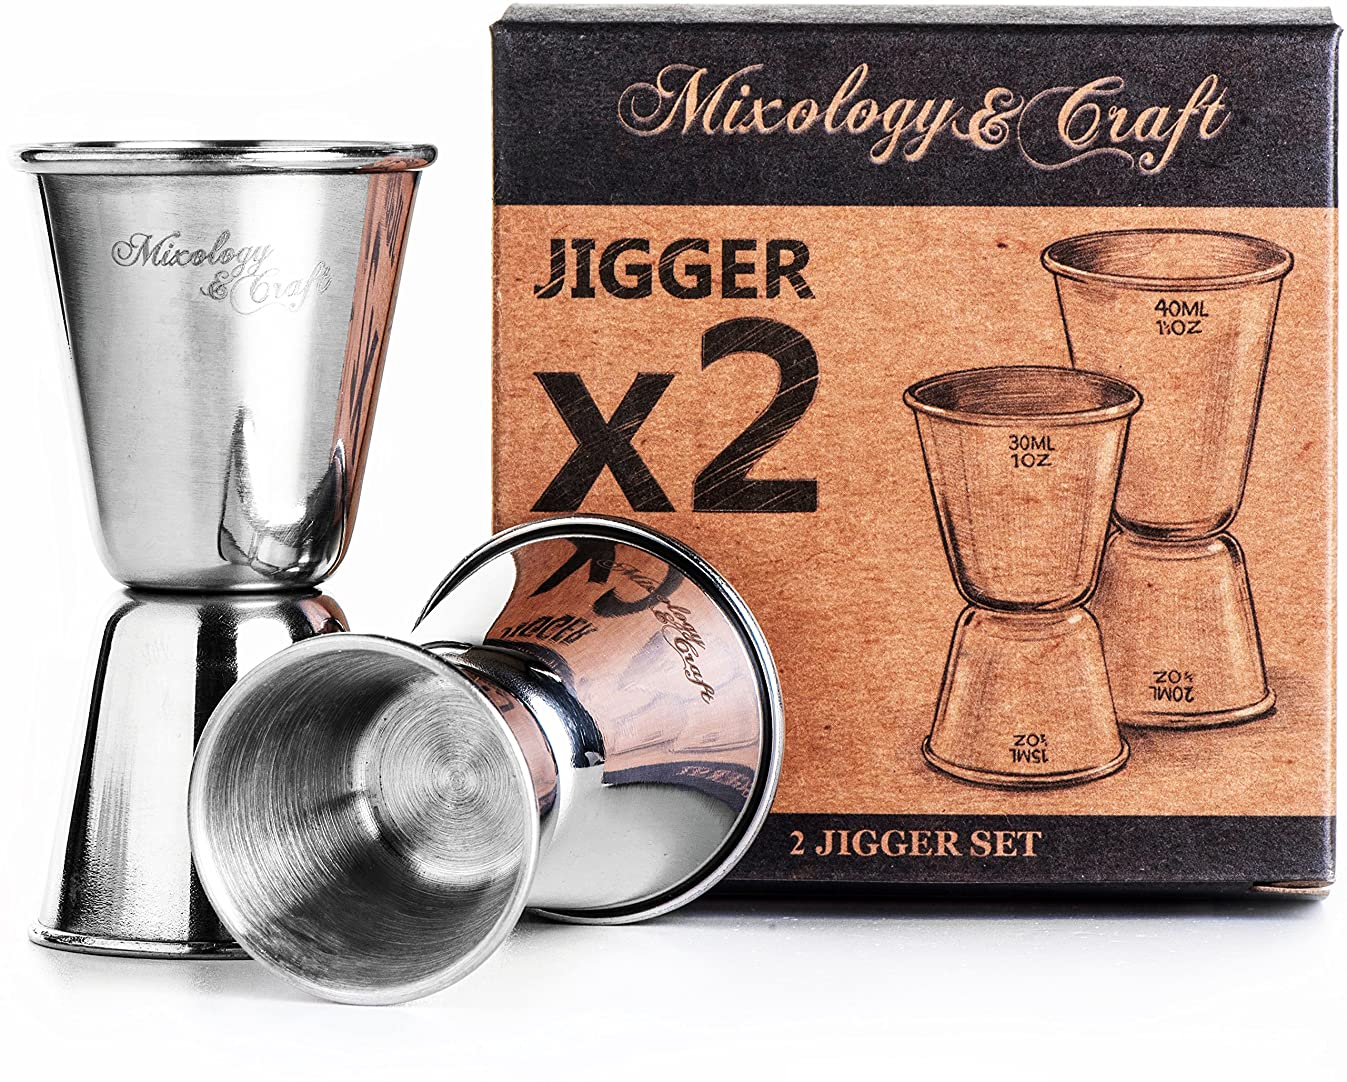 Double Jigger Set by Mixology&Craft - Professional Grade Bar Tool Accessories, Two Stainless Steel Cocktail Jiggers Holds ? oz to 1? oz - Measure Liquor with Confidence Like a Professional Bartender